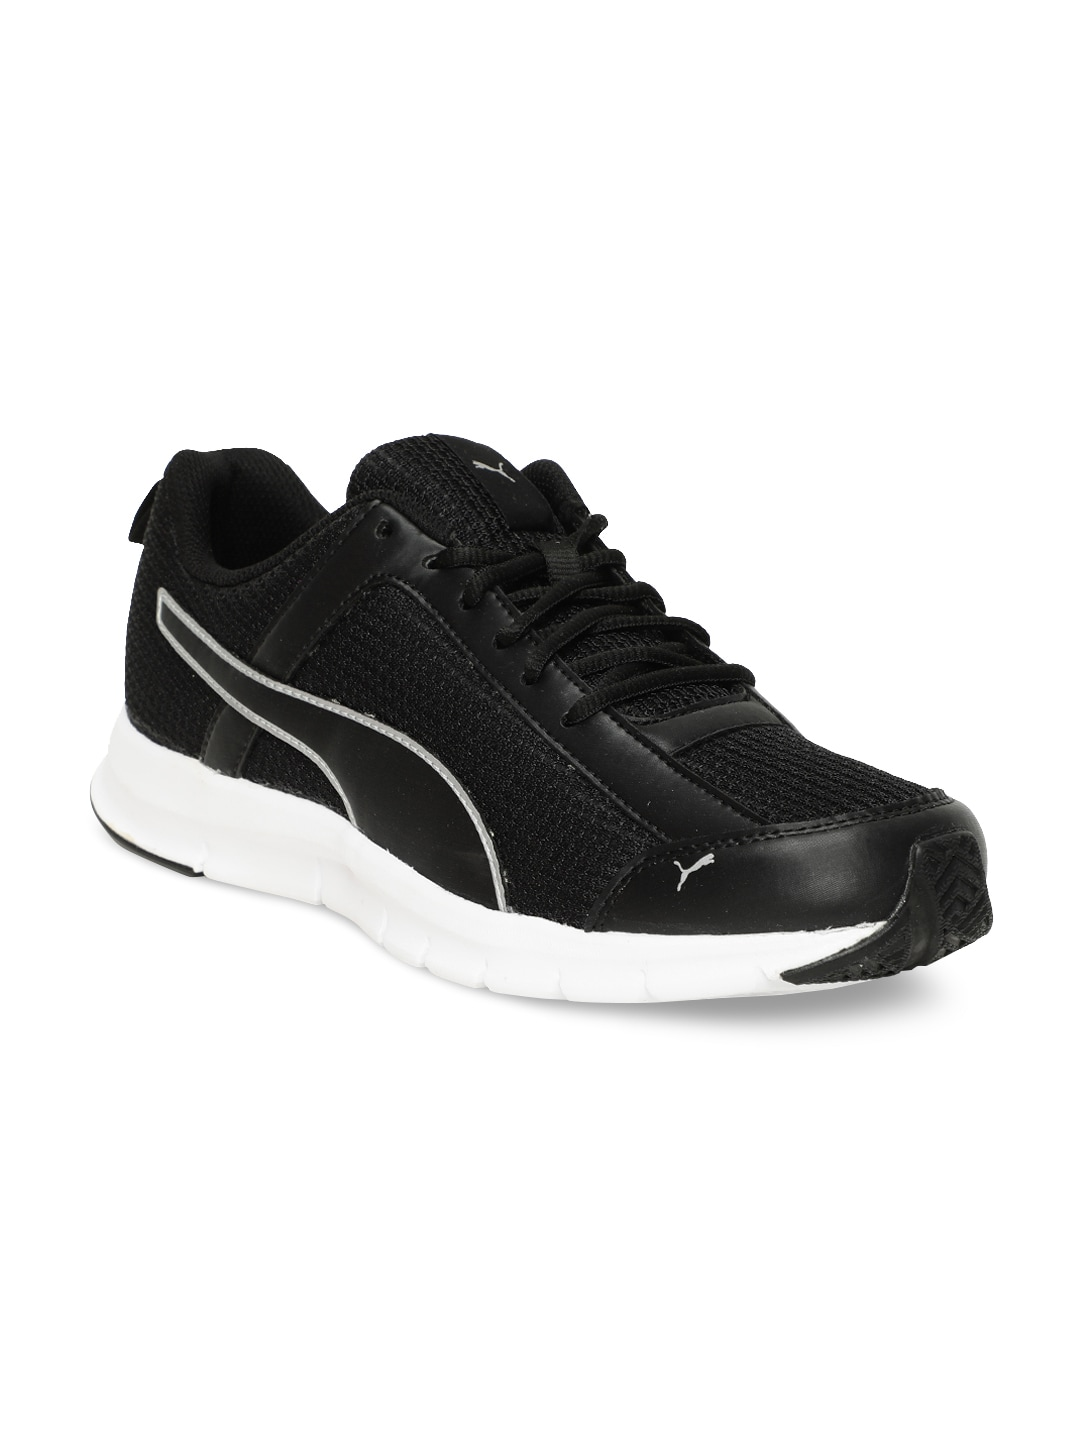 save off bc49e aaccf Shoes - Buy Shoes for Men, Women   Kids online in India - Myntra